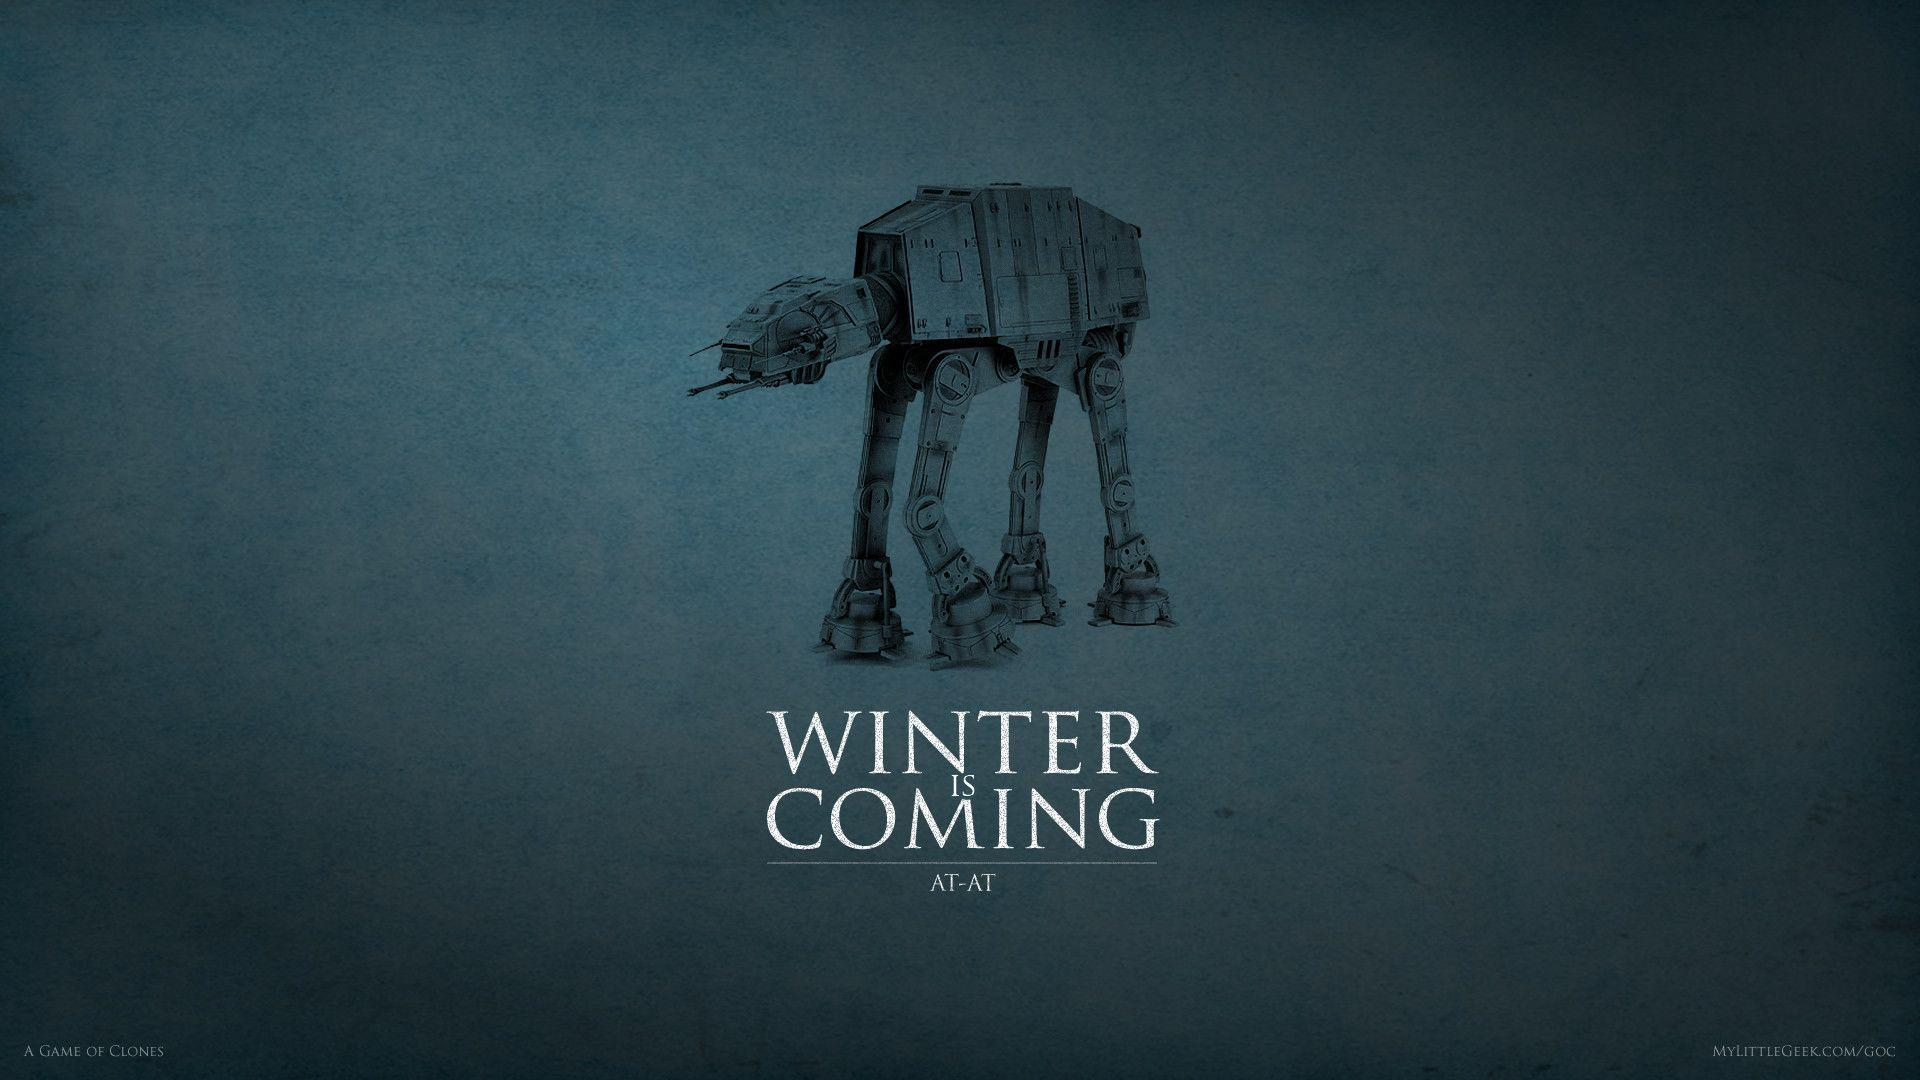 Winter Is Coming Wallpapers - Wallpaper Cave